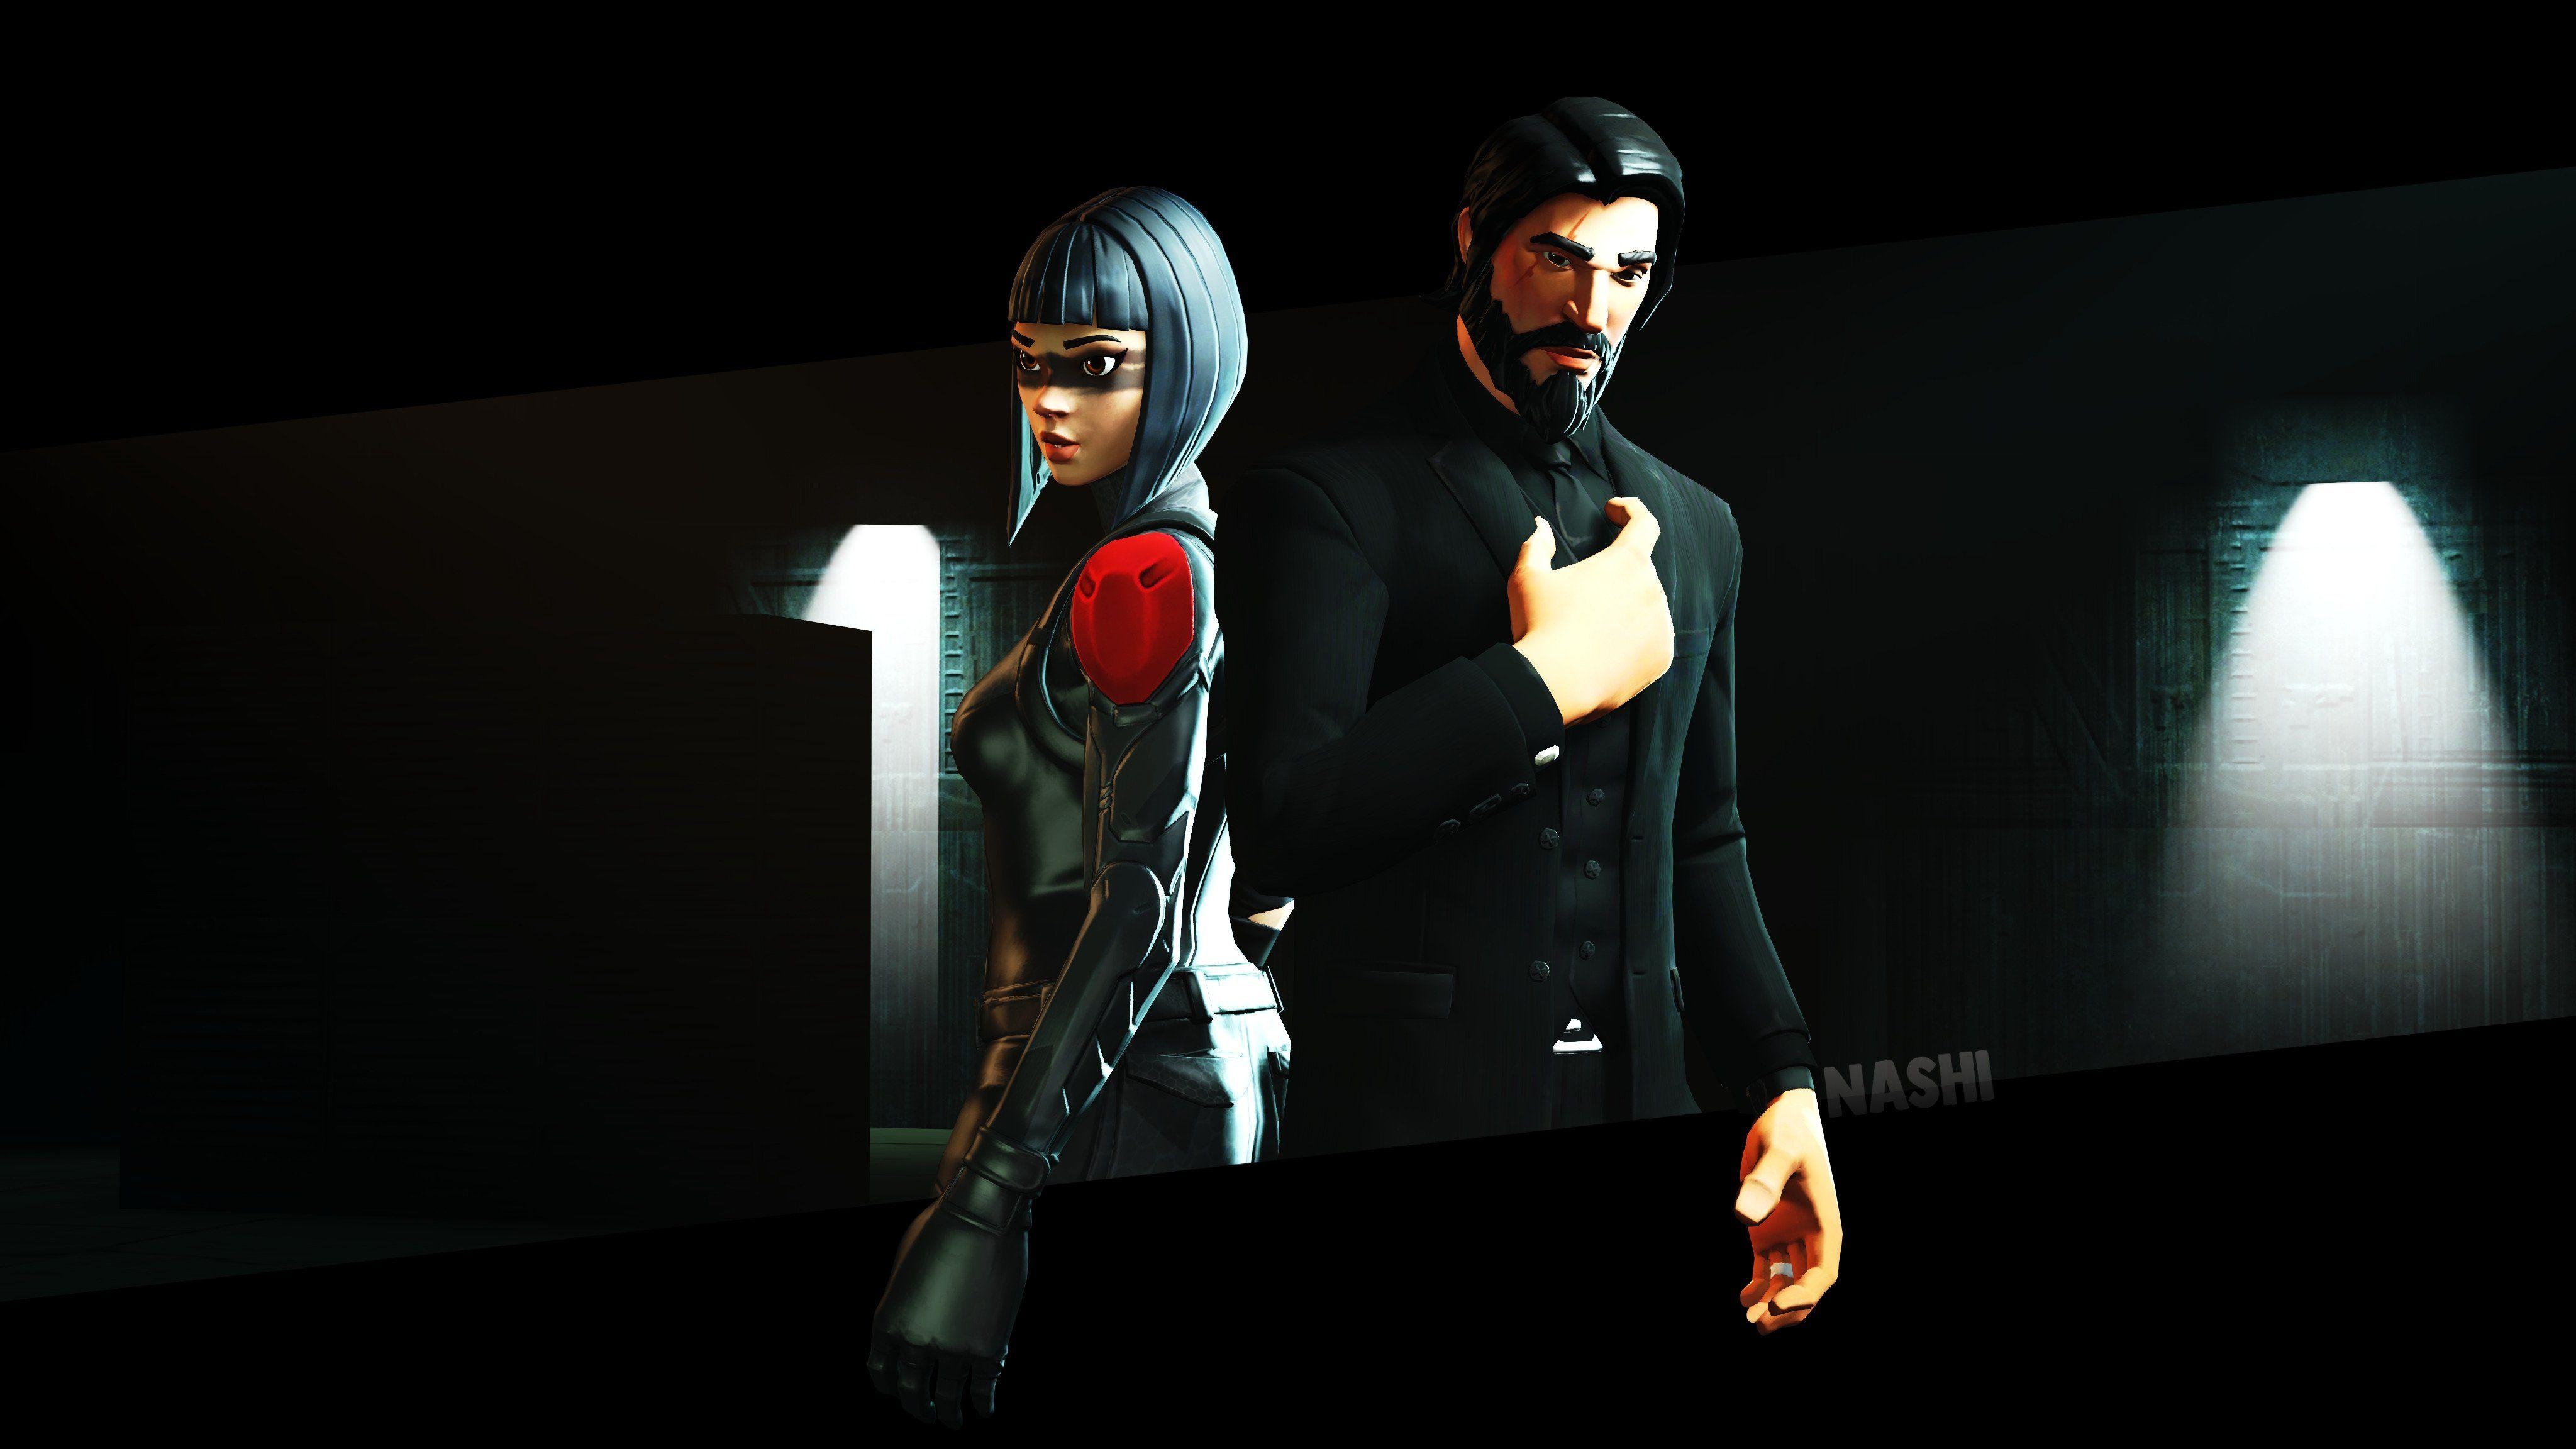 Fortnite John Wick & Shadow Ops By Mrsnashi #4144 Wallpapers and ...